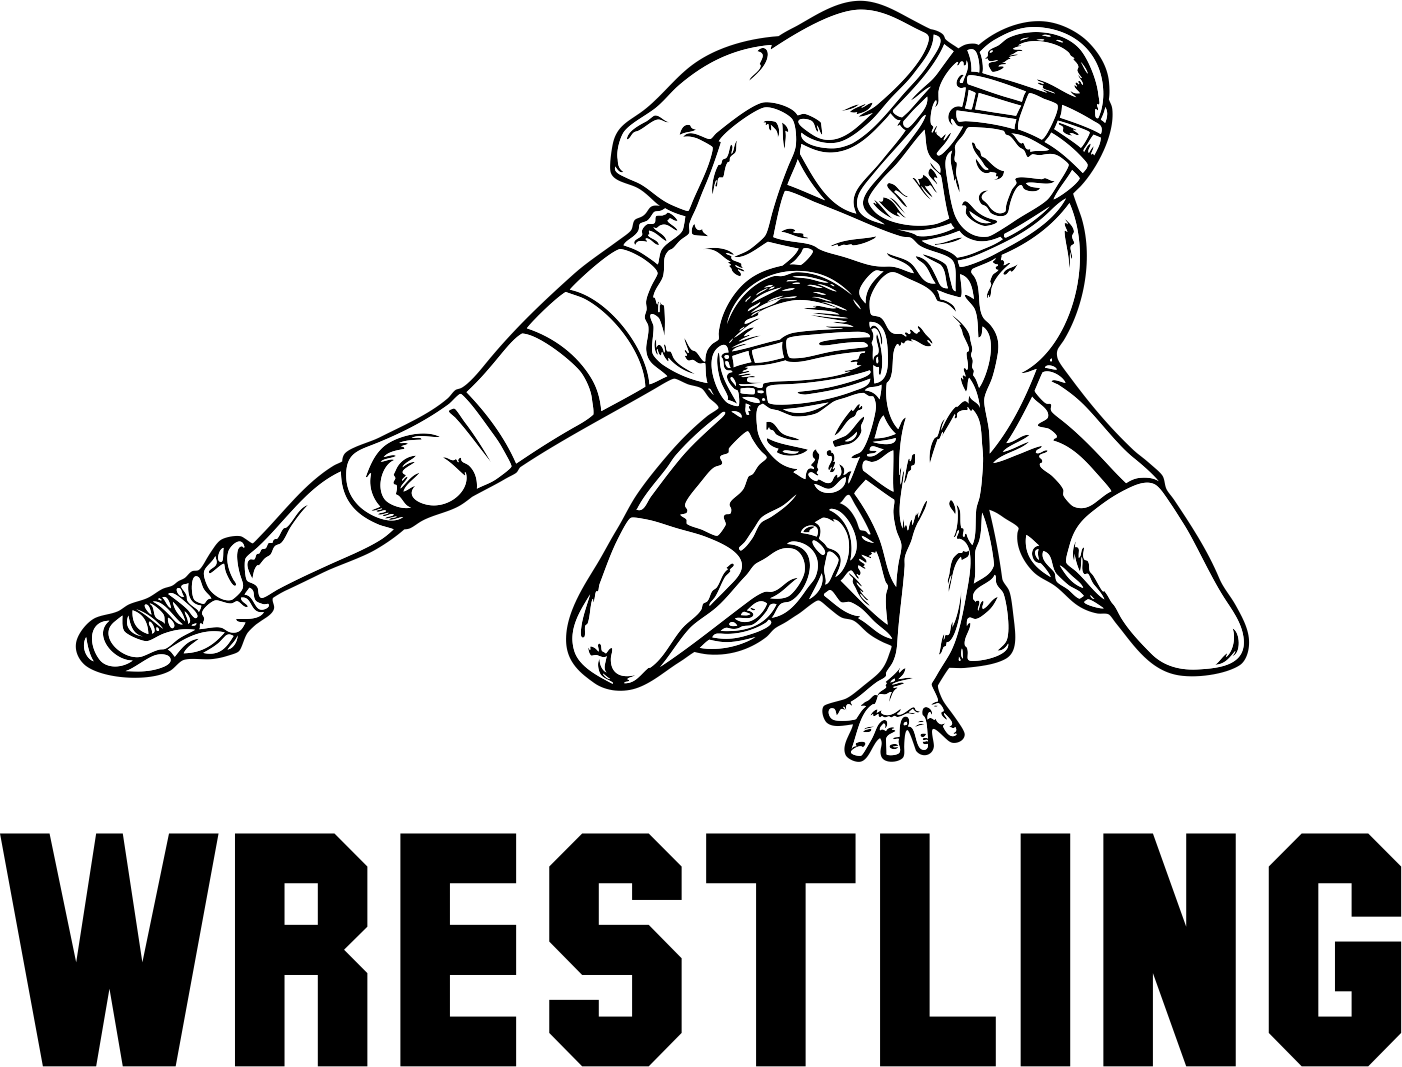 High school wrestling mat clipart clipart royalty free download 28+ Collection of High School Wrestling Drawings | High quality ... clipart royalty free download